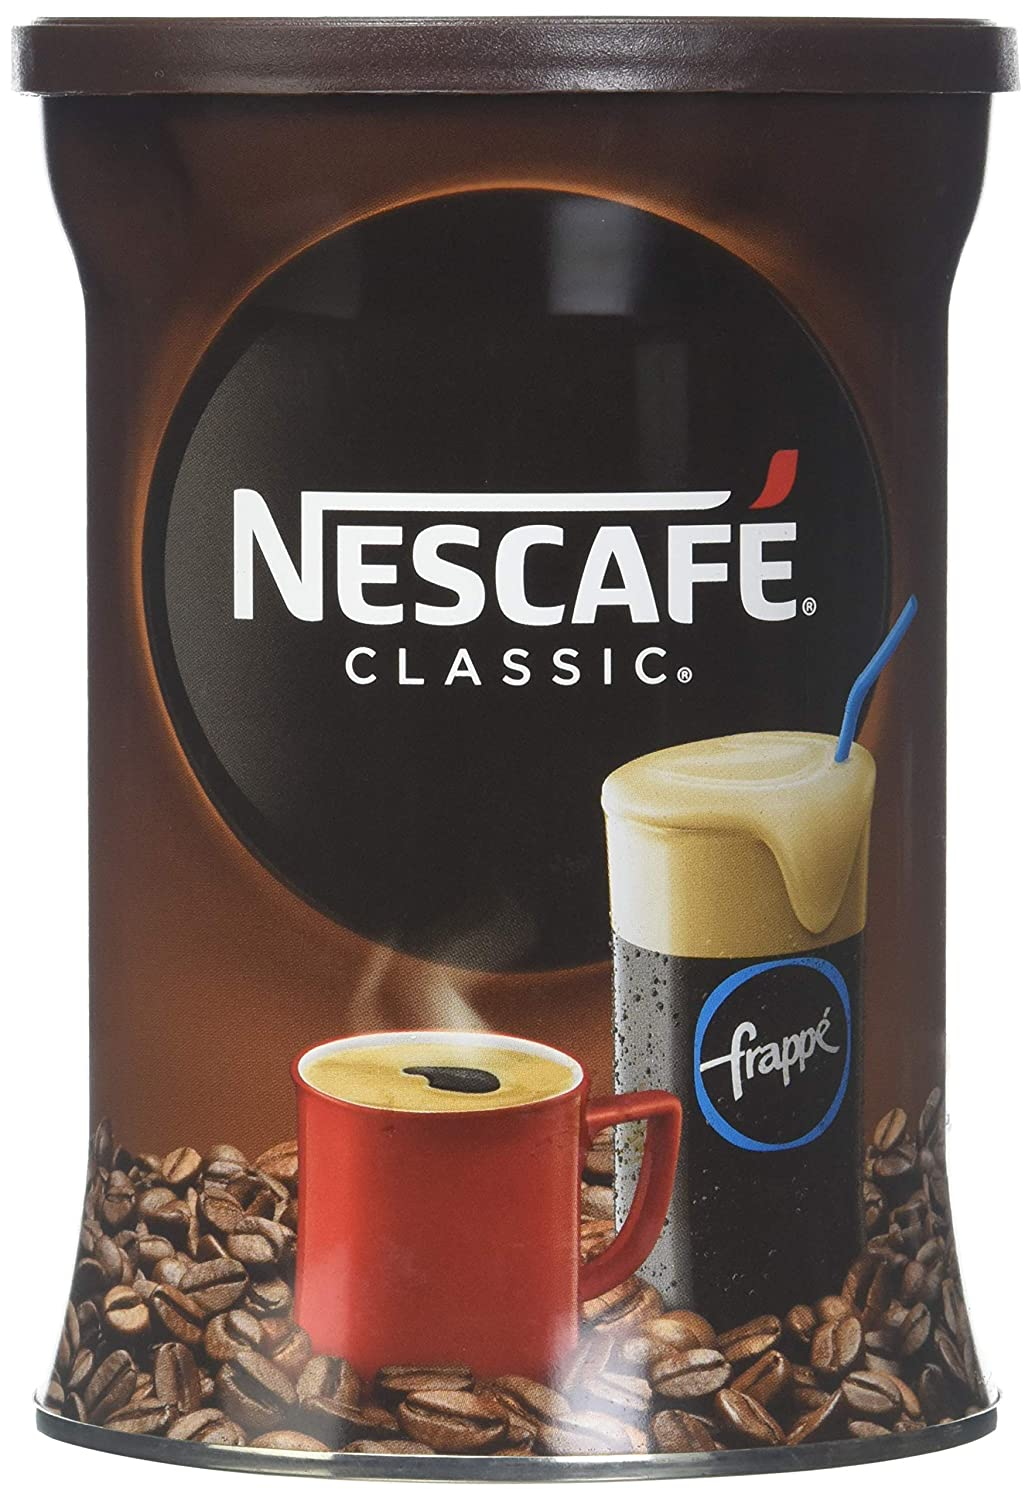 Nescafe Classic Instant Greek Coffee, 7.08 Ounce (Pack of 2) SYNCHKG097997